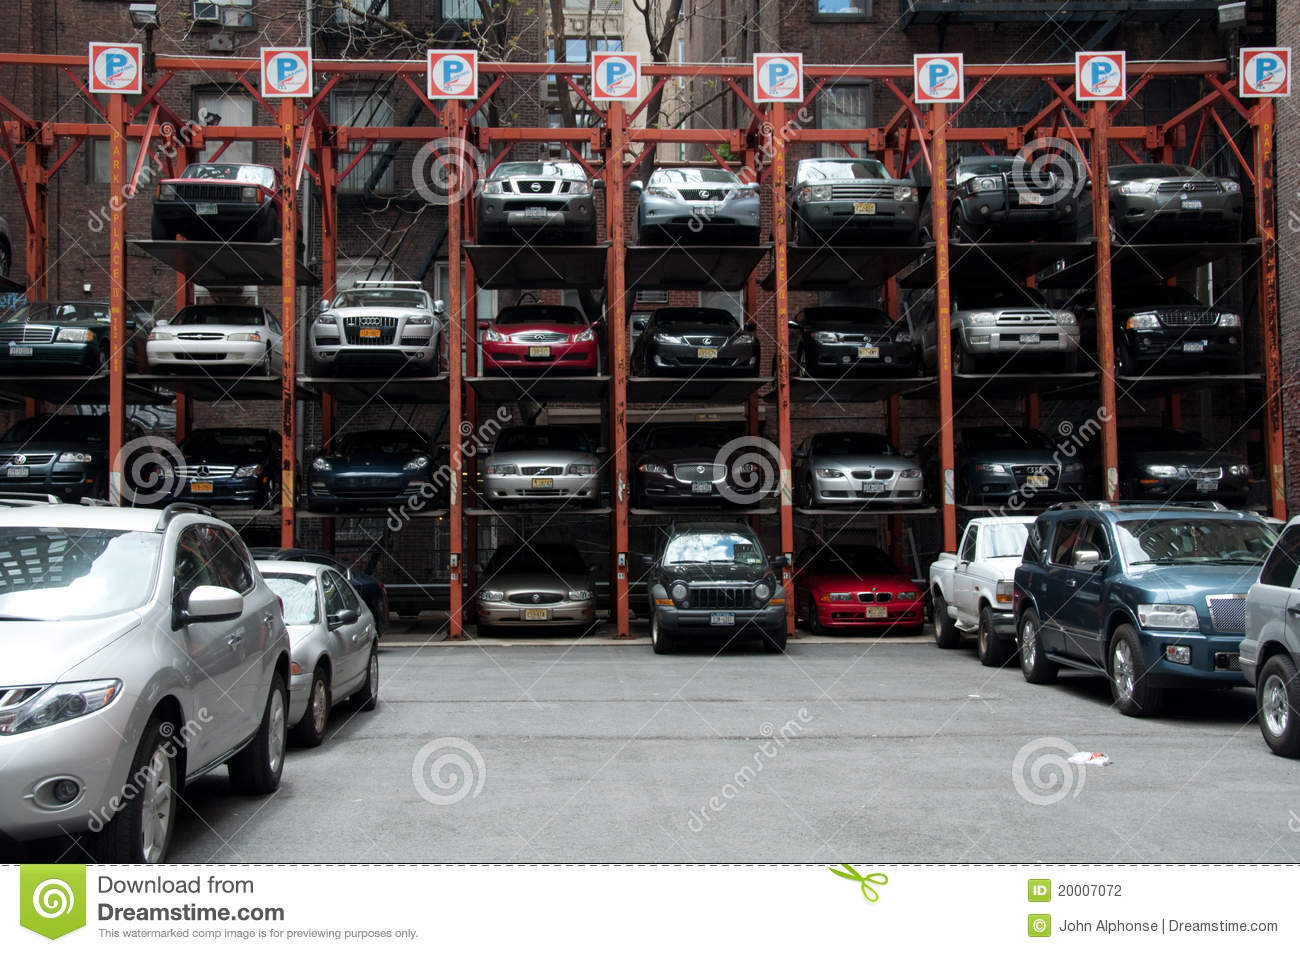 Vertical hydraulic parking spaces new york city editorial for Parking garages new york city